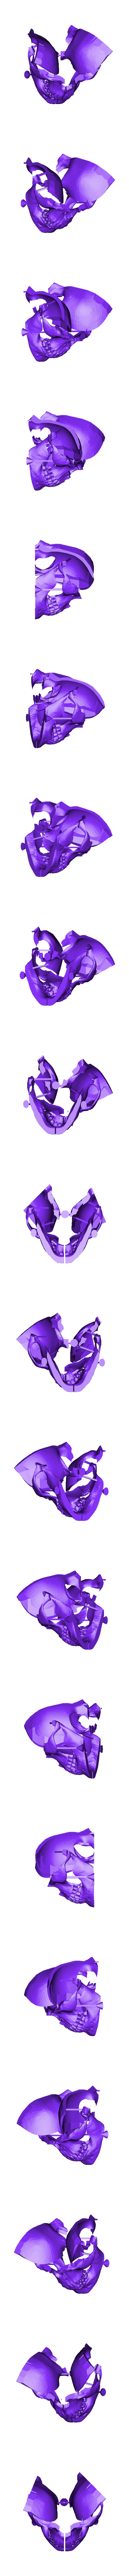 skull_face_mask_all_in_one_print.stl Download free STL file full faced skull mask no supports needed • 3D print object, cube606592